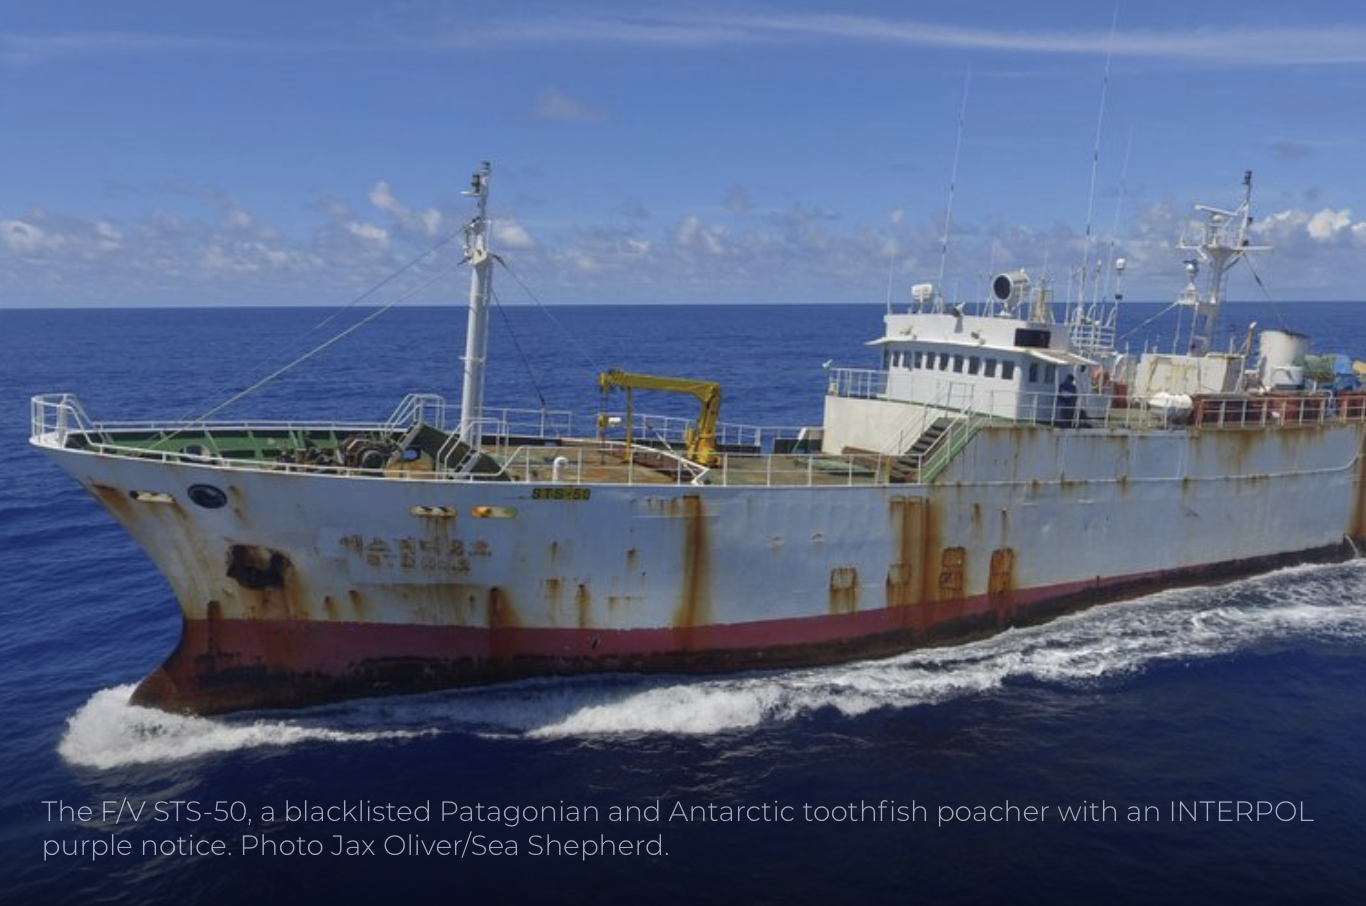 COLTO Hails Two Major IUU Toothfish Vessel Seizures; One in Liberia, One in Indonesia